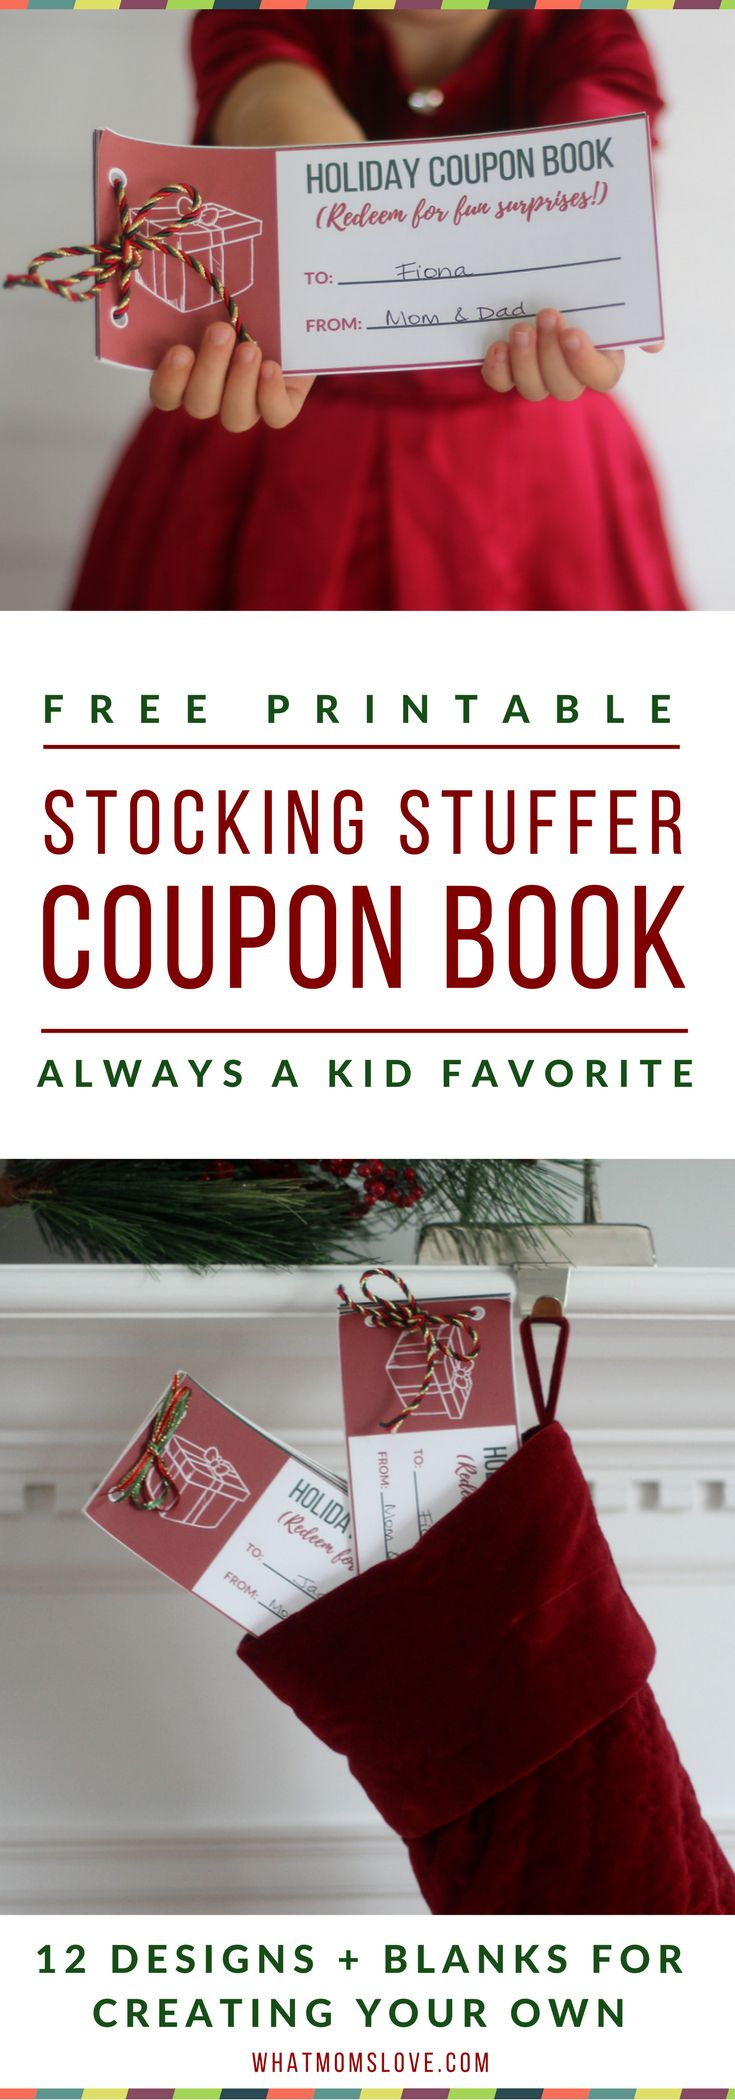 "Free Printable Coupon Books For Kids | What a fun gift for the Holidays or birthdays! 12 designs for memorable experiences like a ""one-on-one date with mom or dad"" or special treats like ""breakfast in bed"" and ""stay up 30 minutes past bedtime"". You get Christmas, Hanukkah and Birthday designs + blanks to write-in your own. Great DIY gift - simply download and print. Good idea for a Stocking Stuffer for children! Part of The Unrivaled Non-Toy Gift Guide from What Moms Love"